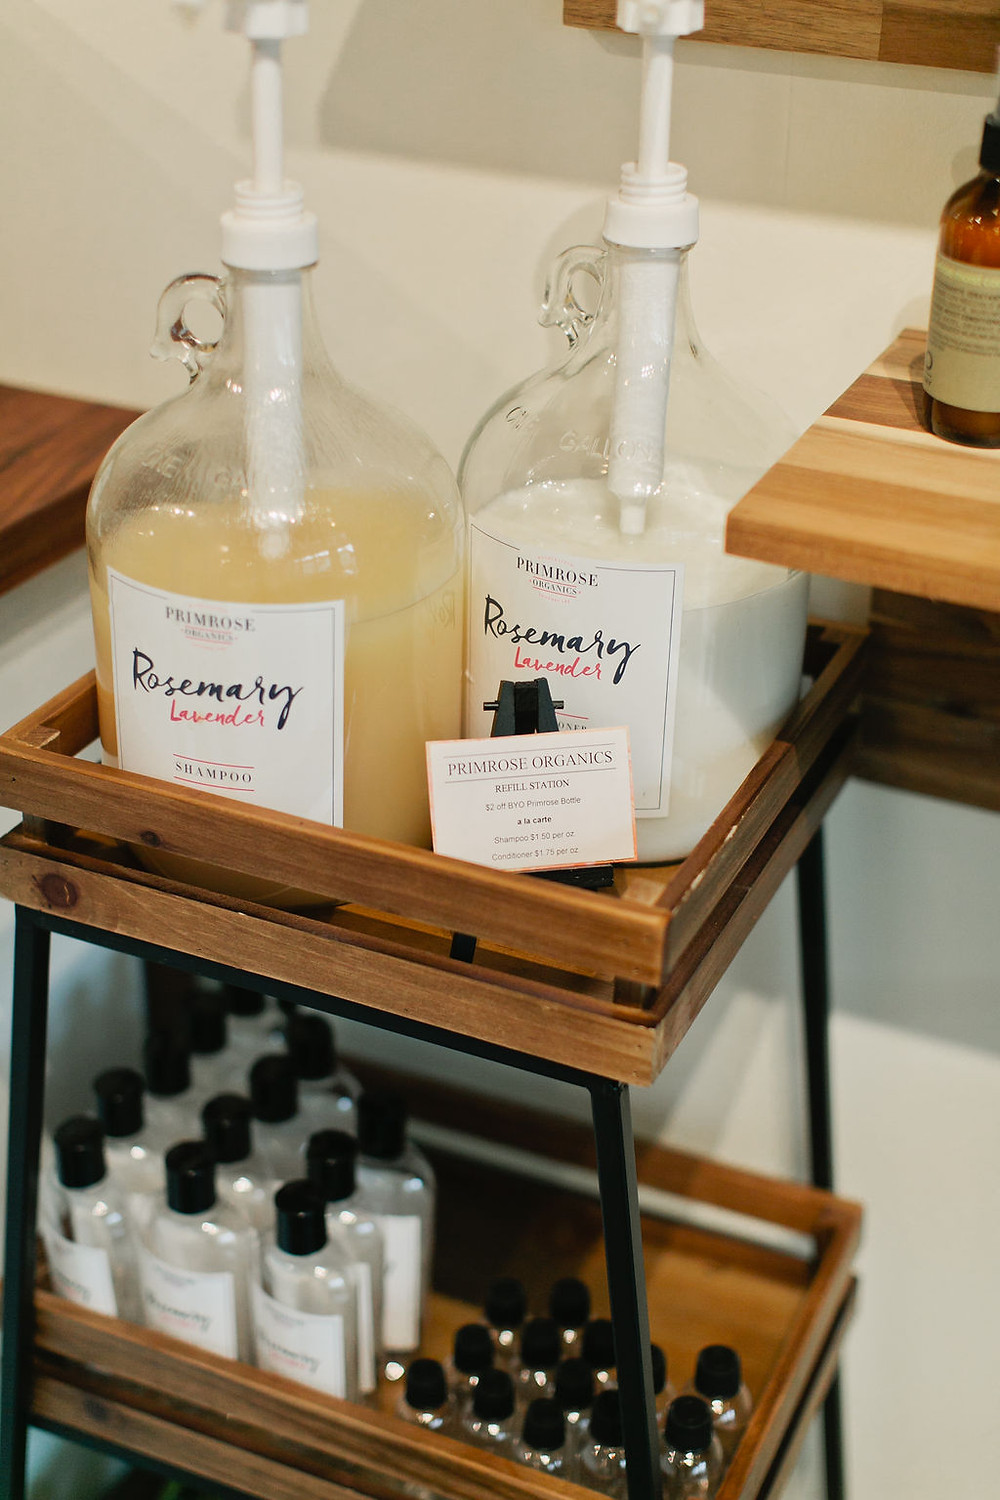 We love offering amazing products and try to cut back on waste where ever we can. We now stock a store favorite, Primrose Organics, in bulk! Bring in your empty Primrose (or any 8 oz bottle) shampoo or conditioner bottle to refill and get $2 off retail price per bottle.Fill your travel bottles before you head out for a trip or simply try it first by purchasing by the ounce a la carte!